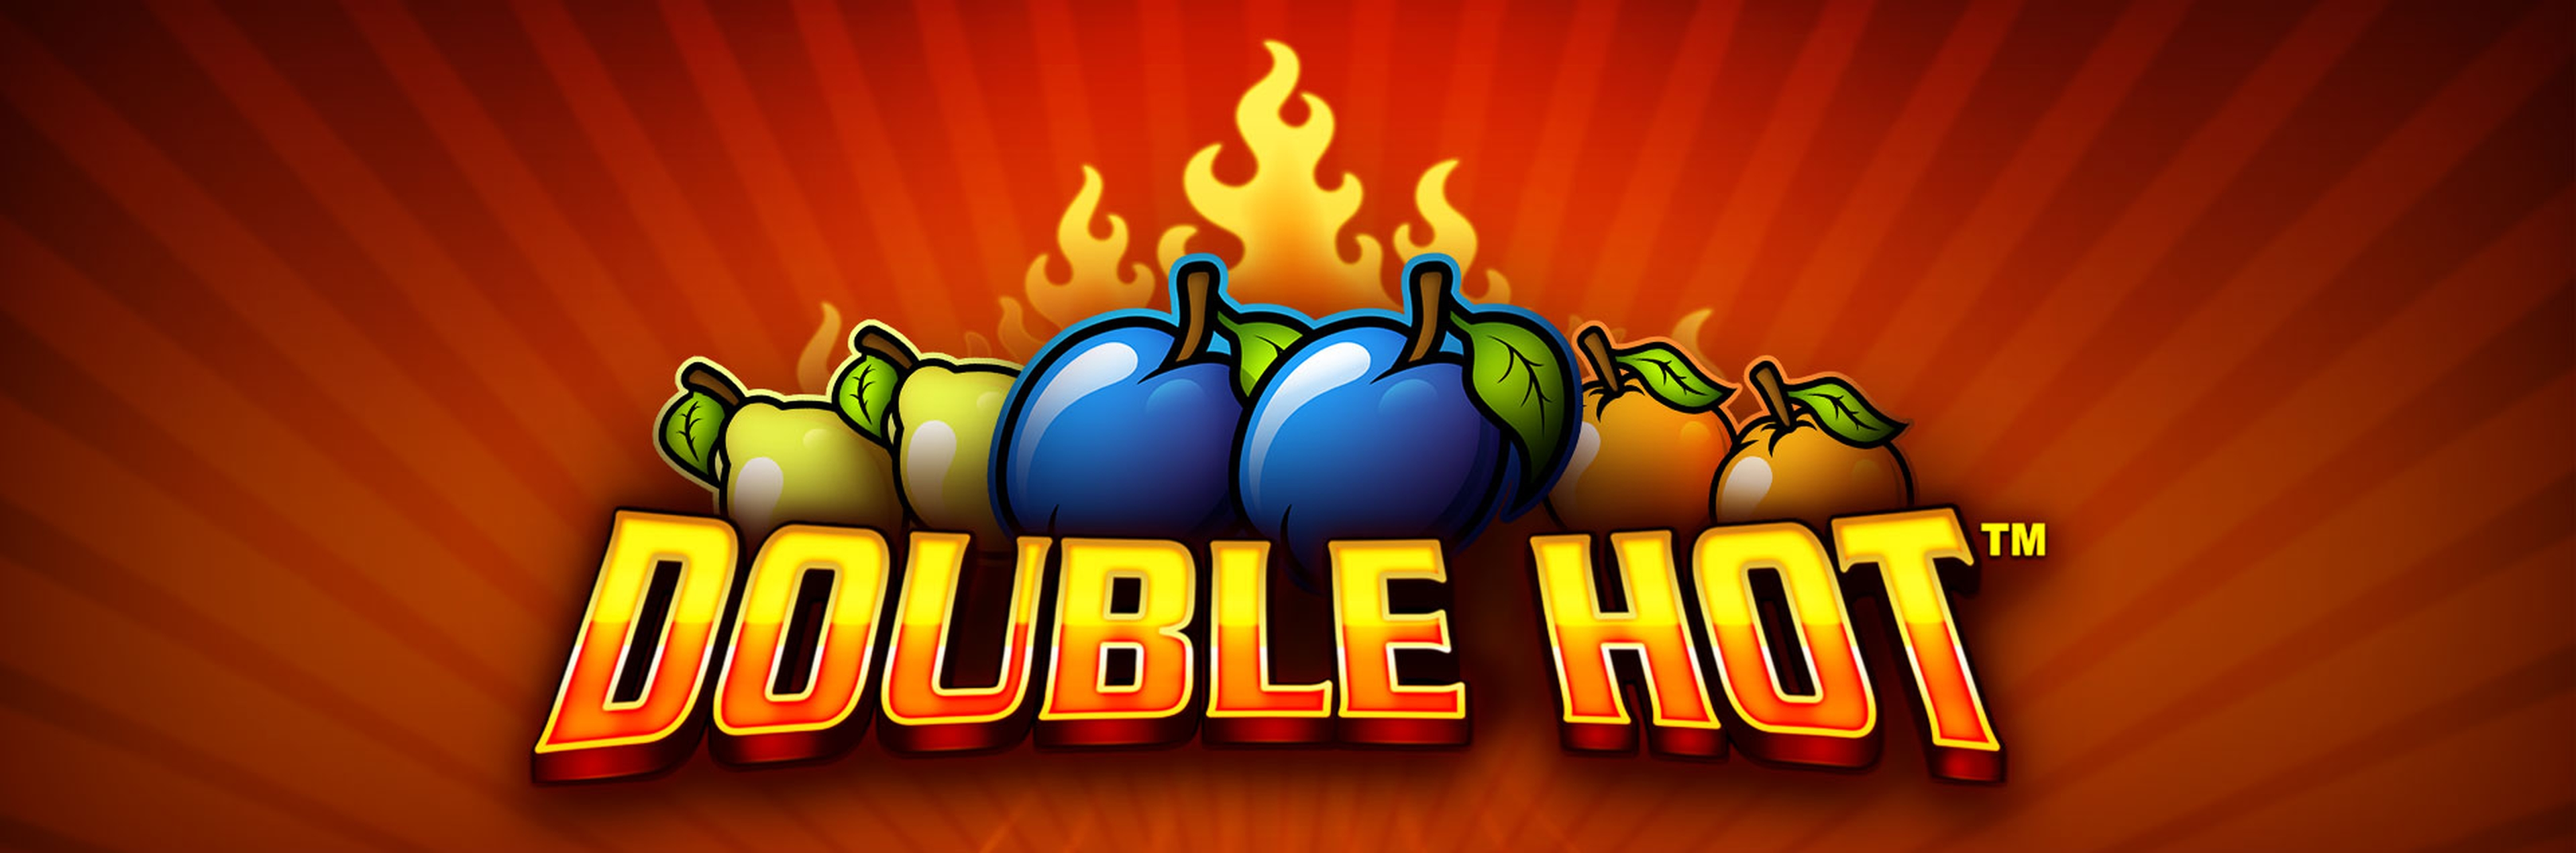 The Double Hot Online Slot Demo Game by Synot Games